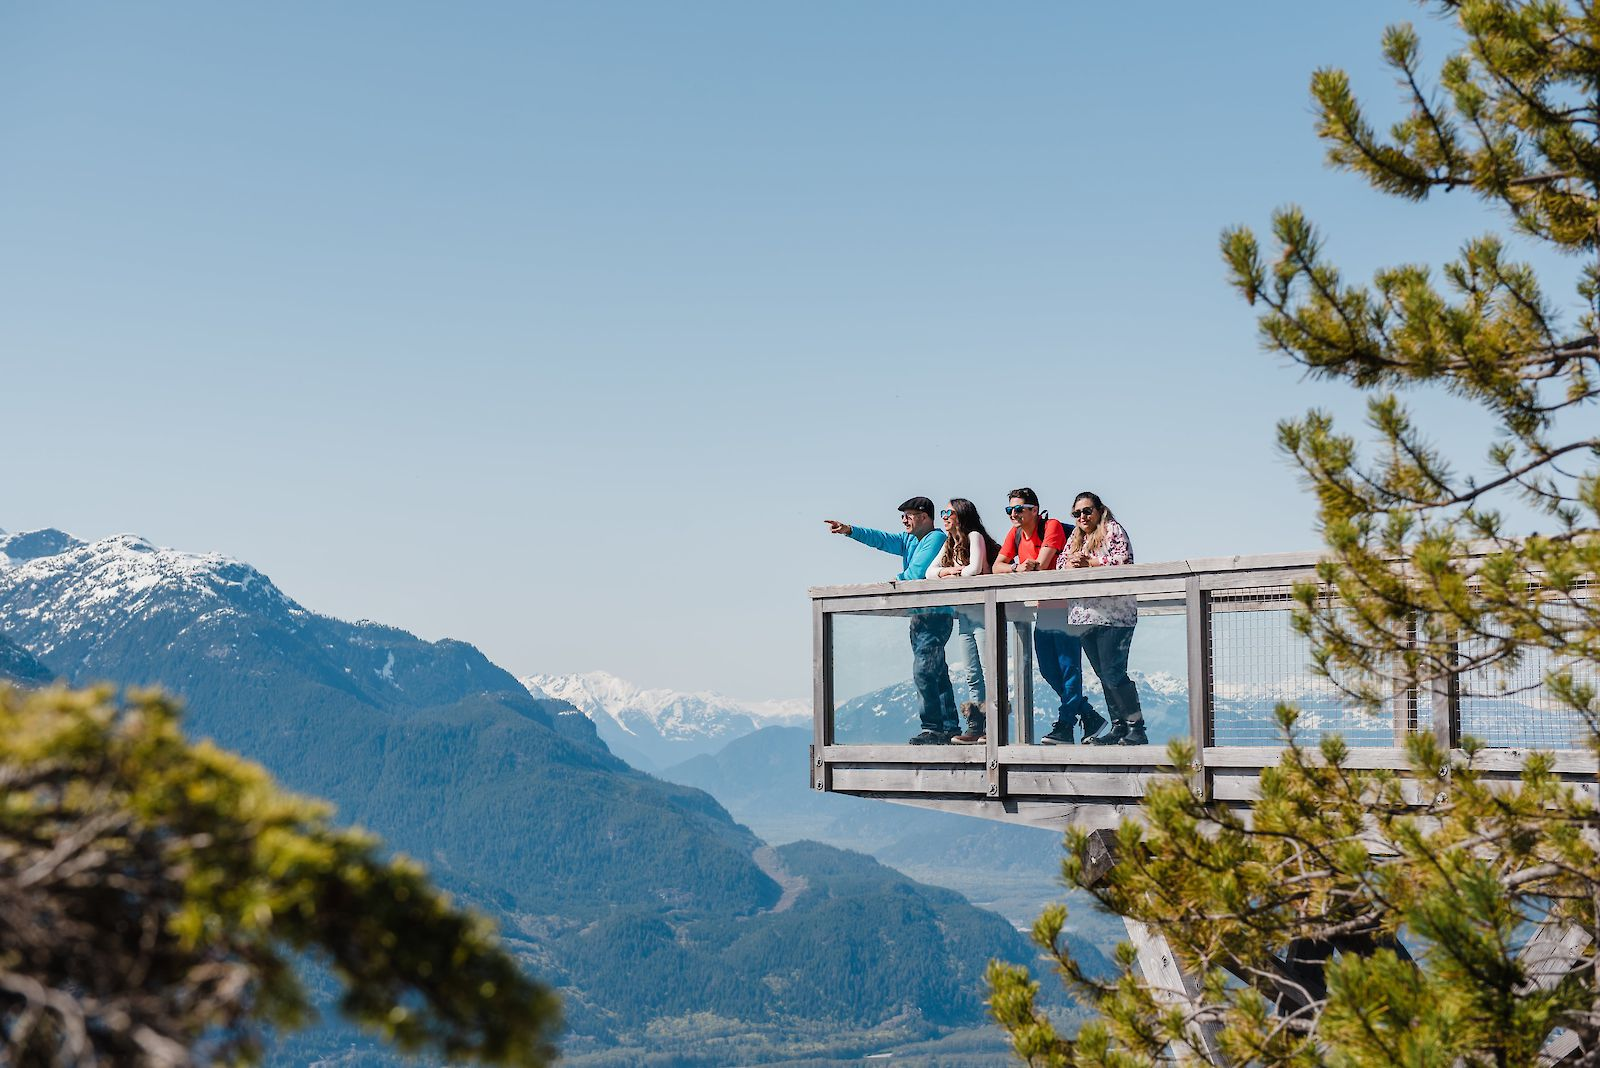 Sea to Sky Gondola Summer Activities